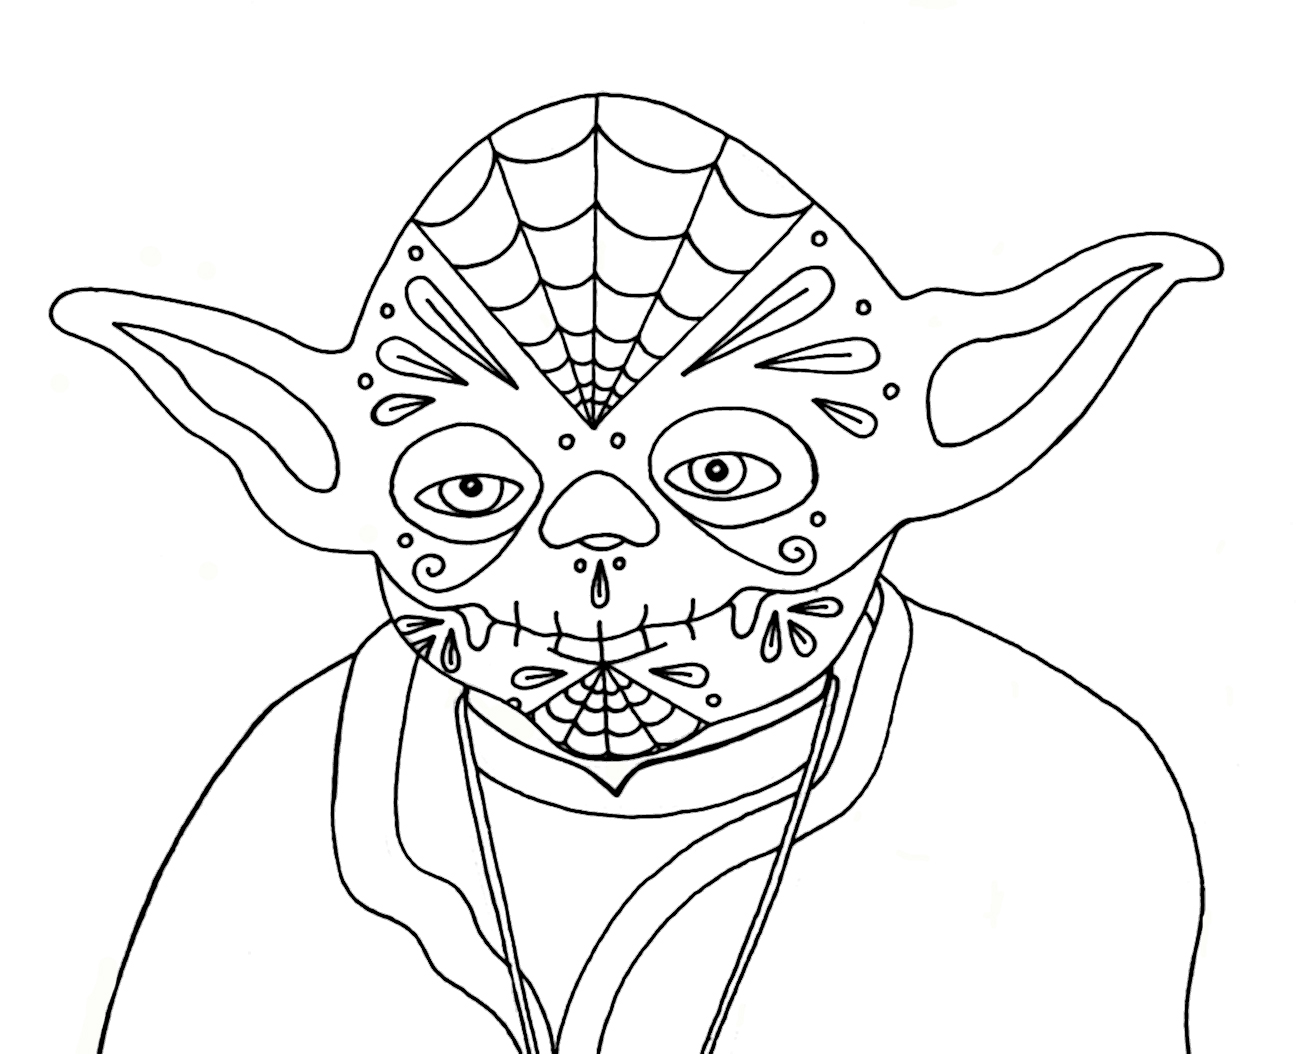 yucca flats, n.m.: wenchkin's coloring pages - dia de los yoda